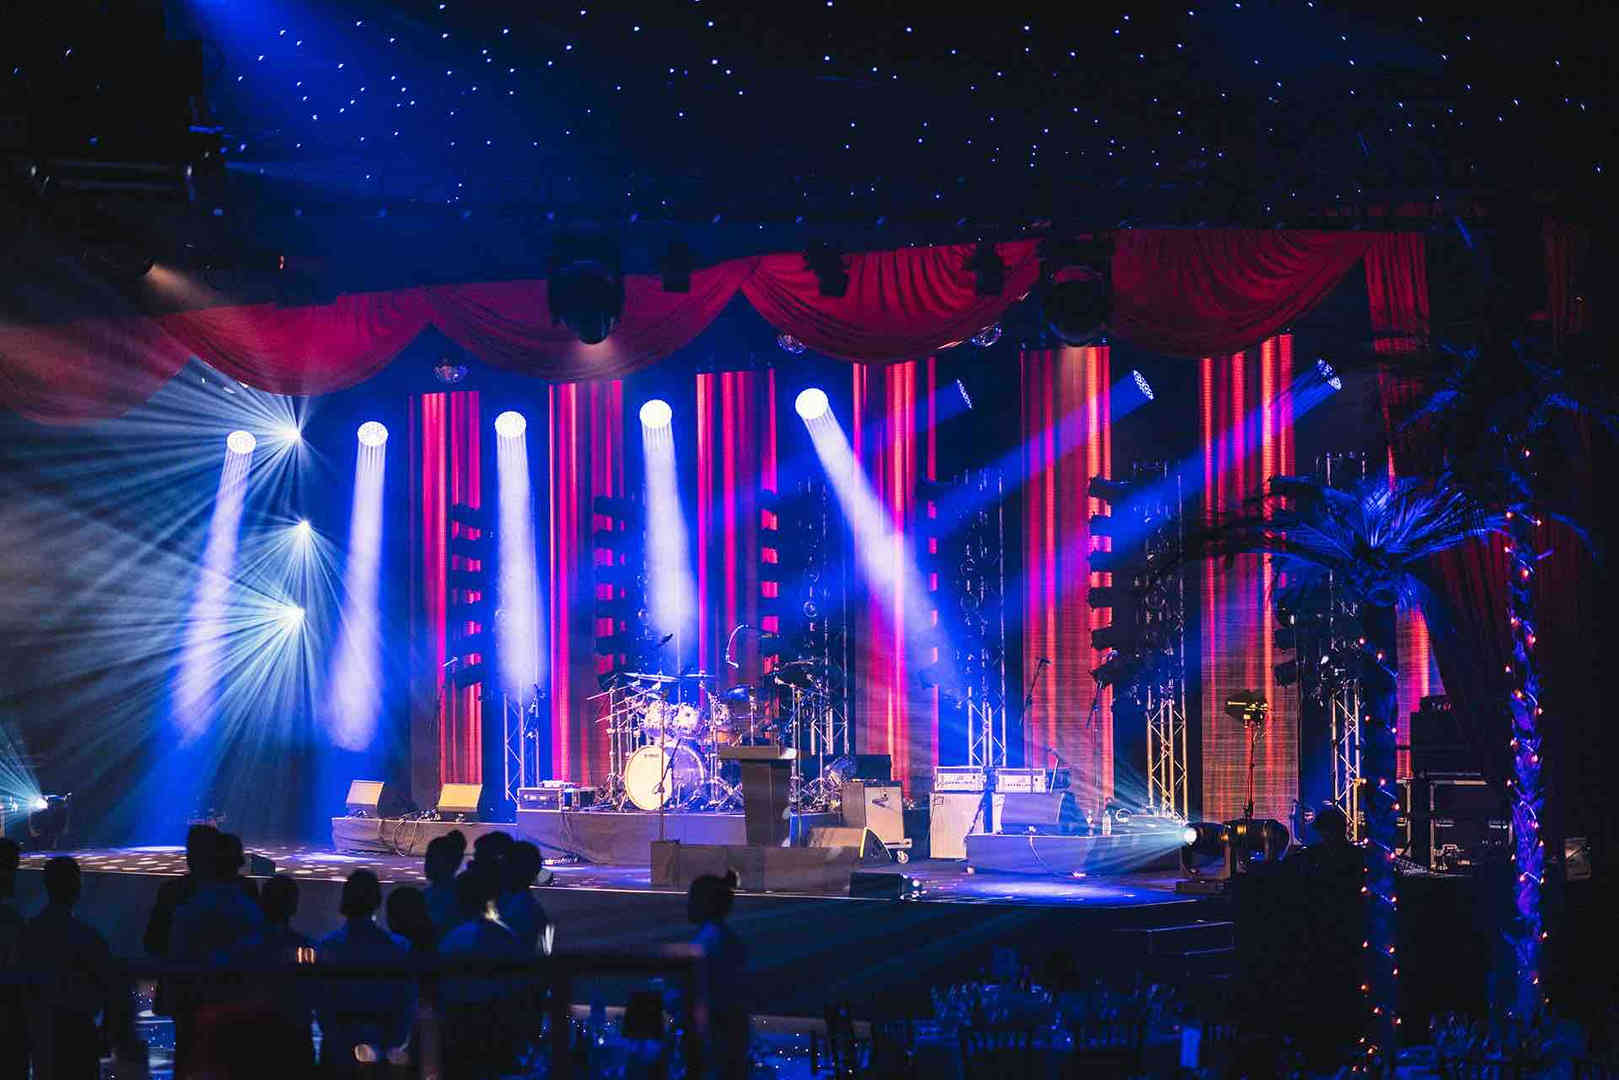 0125 Awardshow Lighting Equipment London